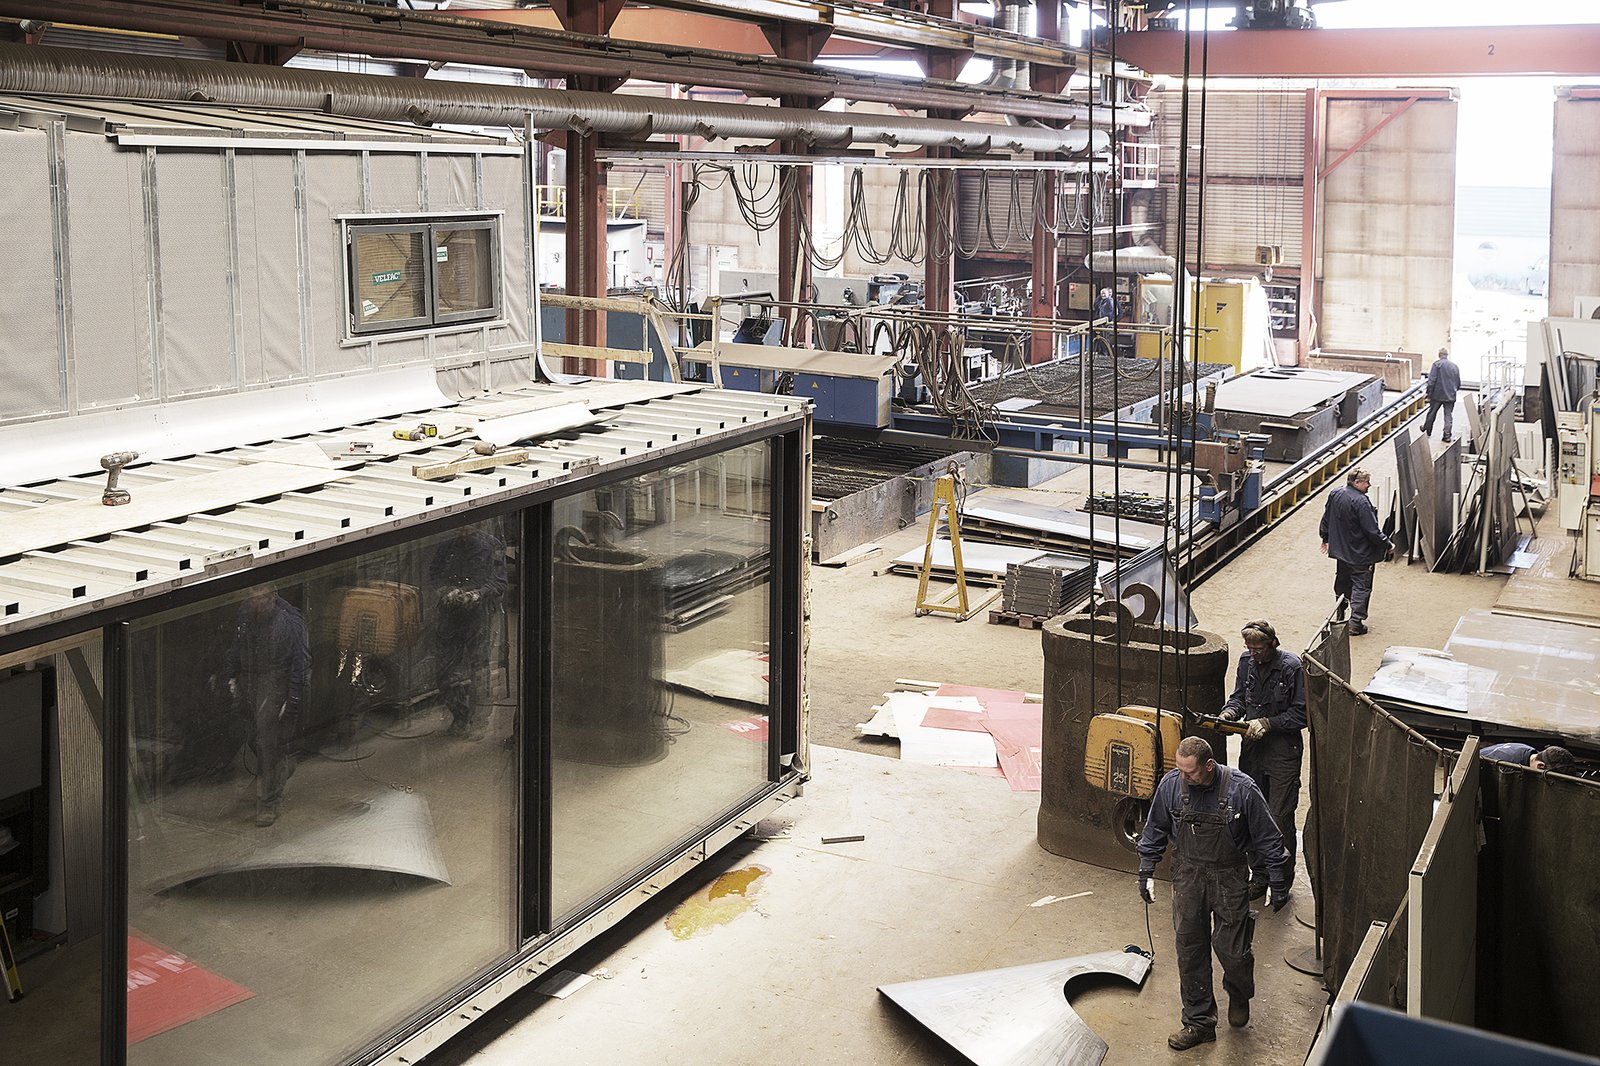 Vipp's prefab Shelter units are made in factory in Denmark with a six-month lead time.  Prefab Gets a Makeover With Danish Industrial Design  by Kelsey Keith